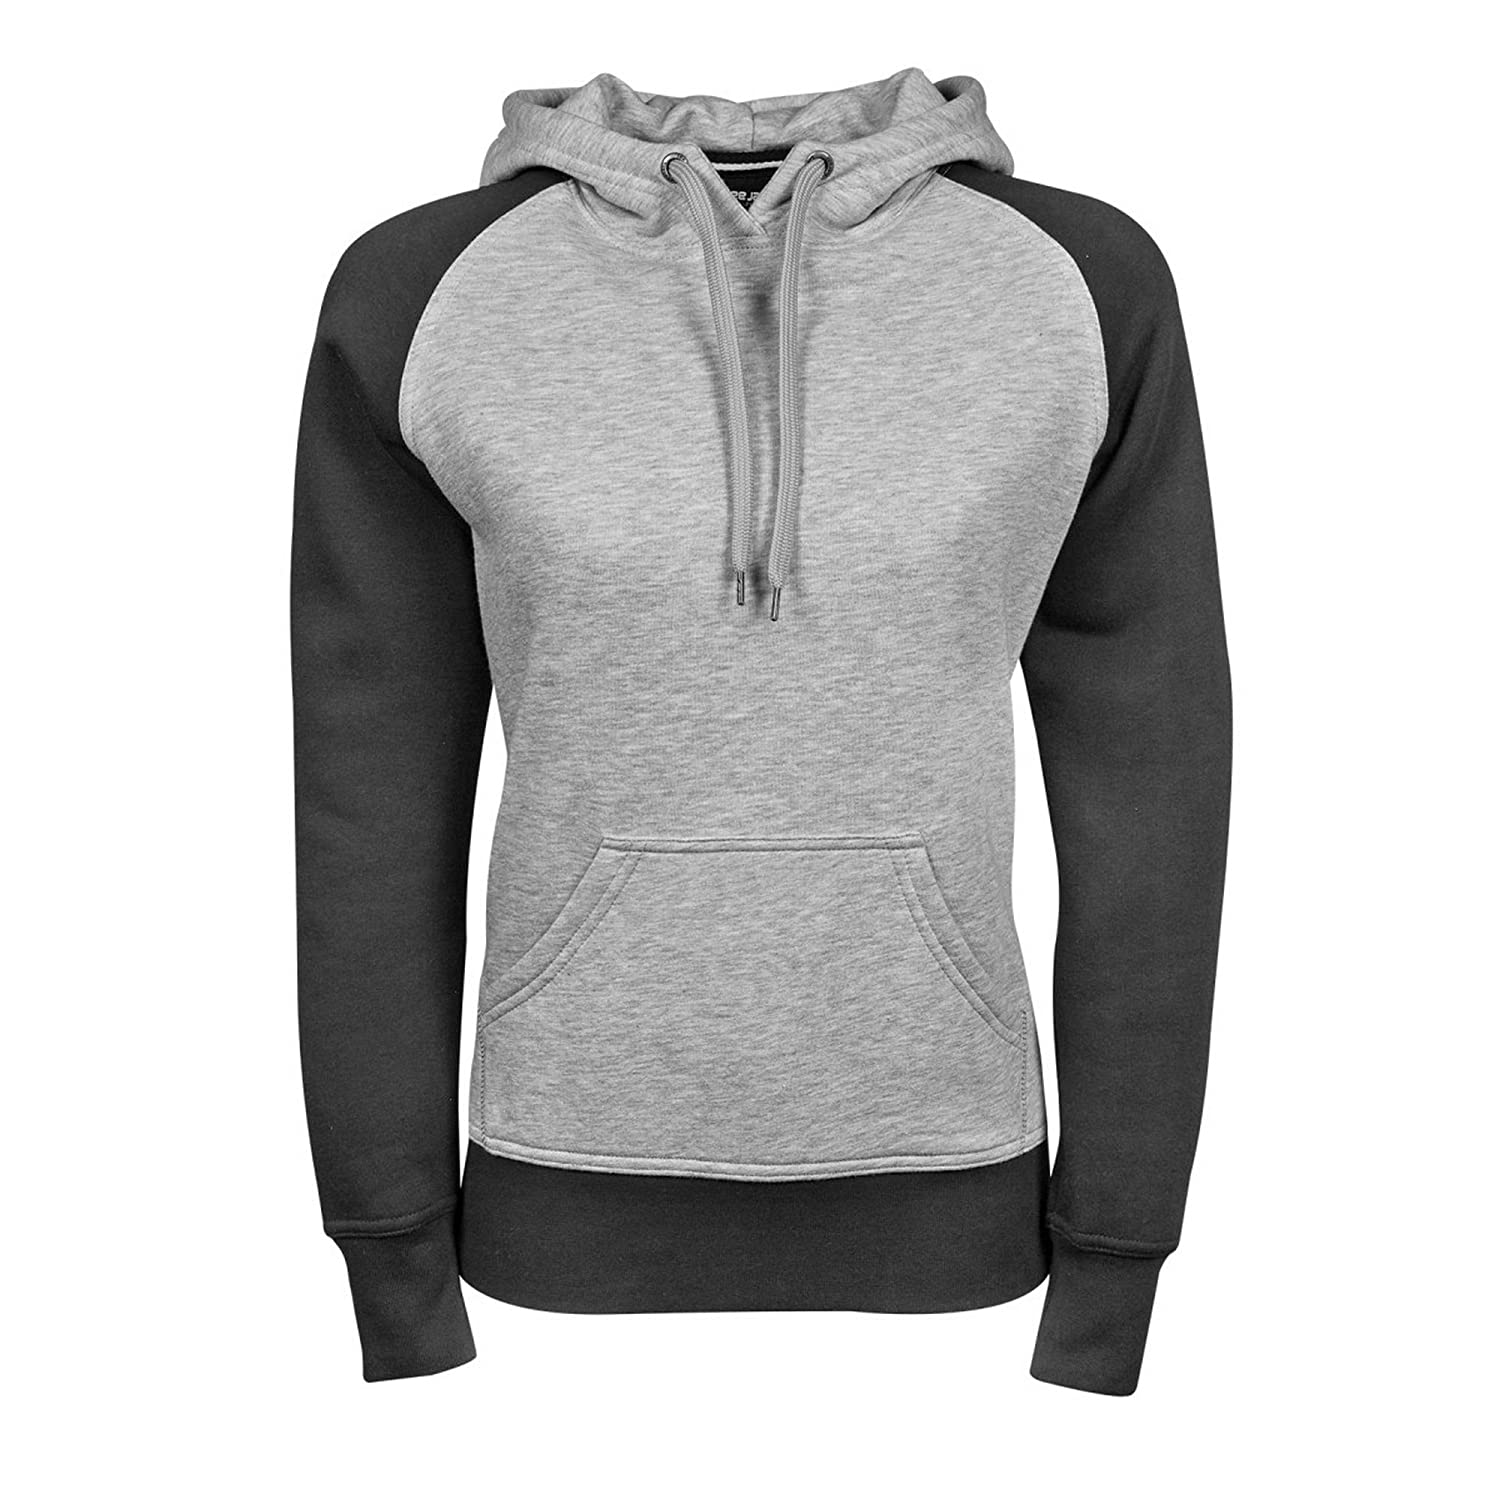 Tee Jays Womens/Ladies Two-Tone Hooded Sweatshirt at Amazon Womens Clothing store: